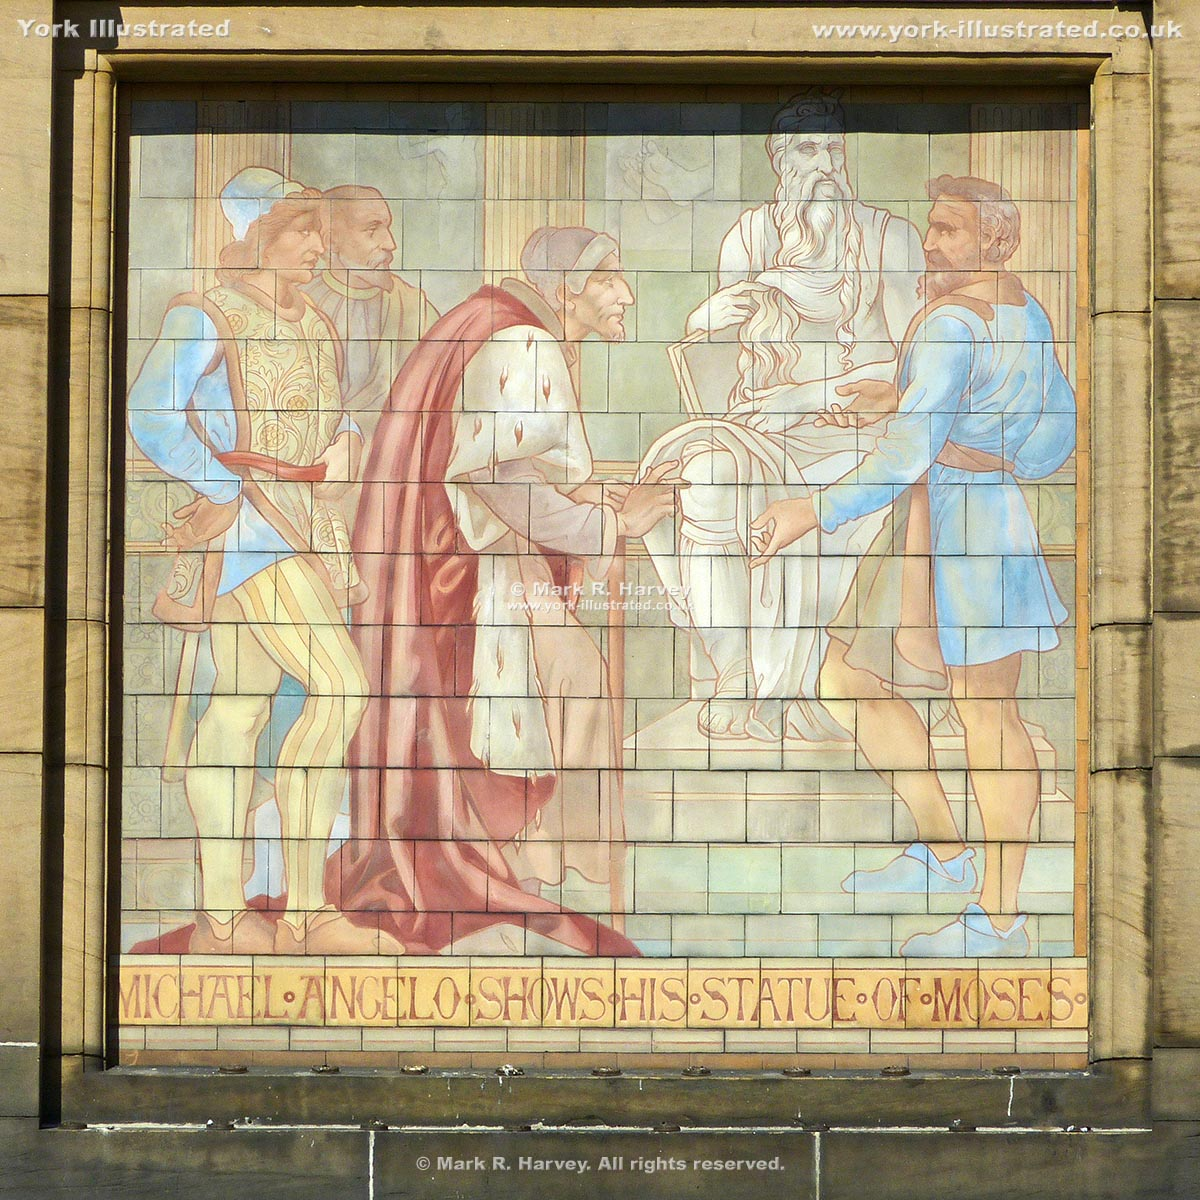 Photograph: Tiled panel depicting Michelangelo and his Moses statue on York Art Gallery facade.